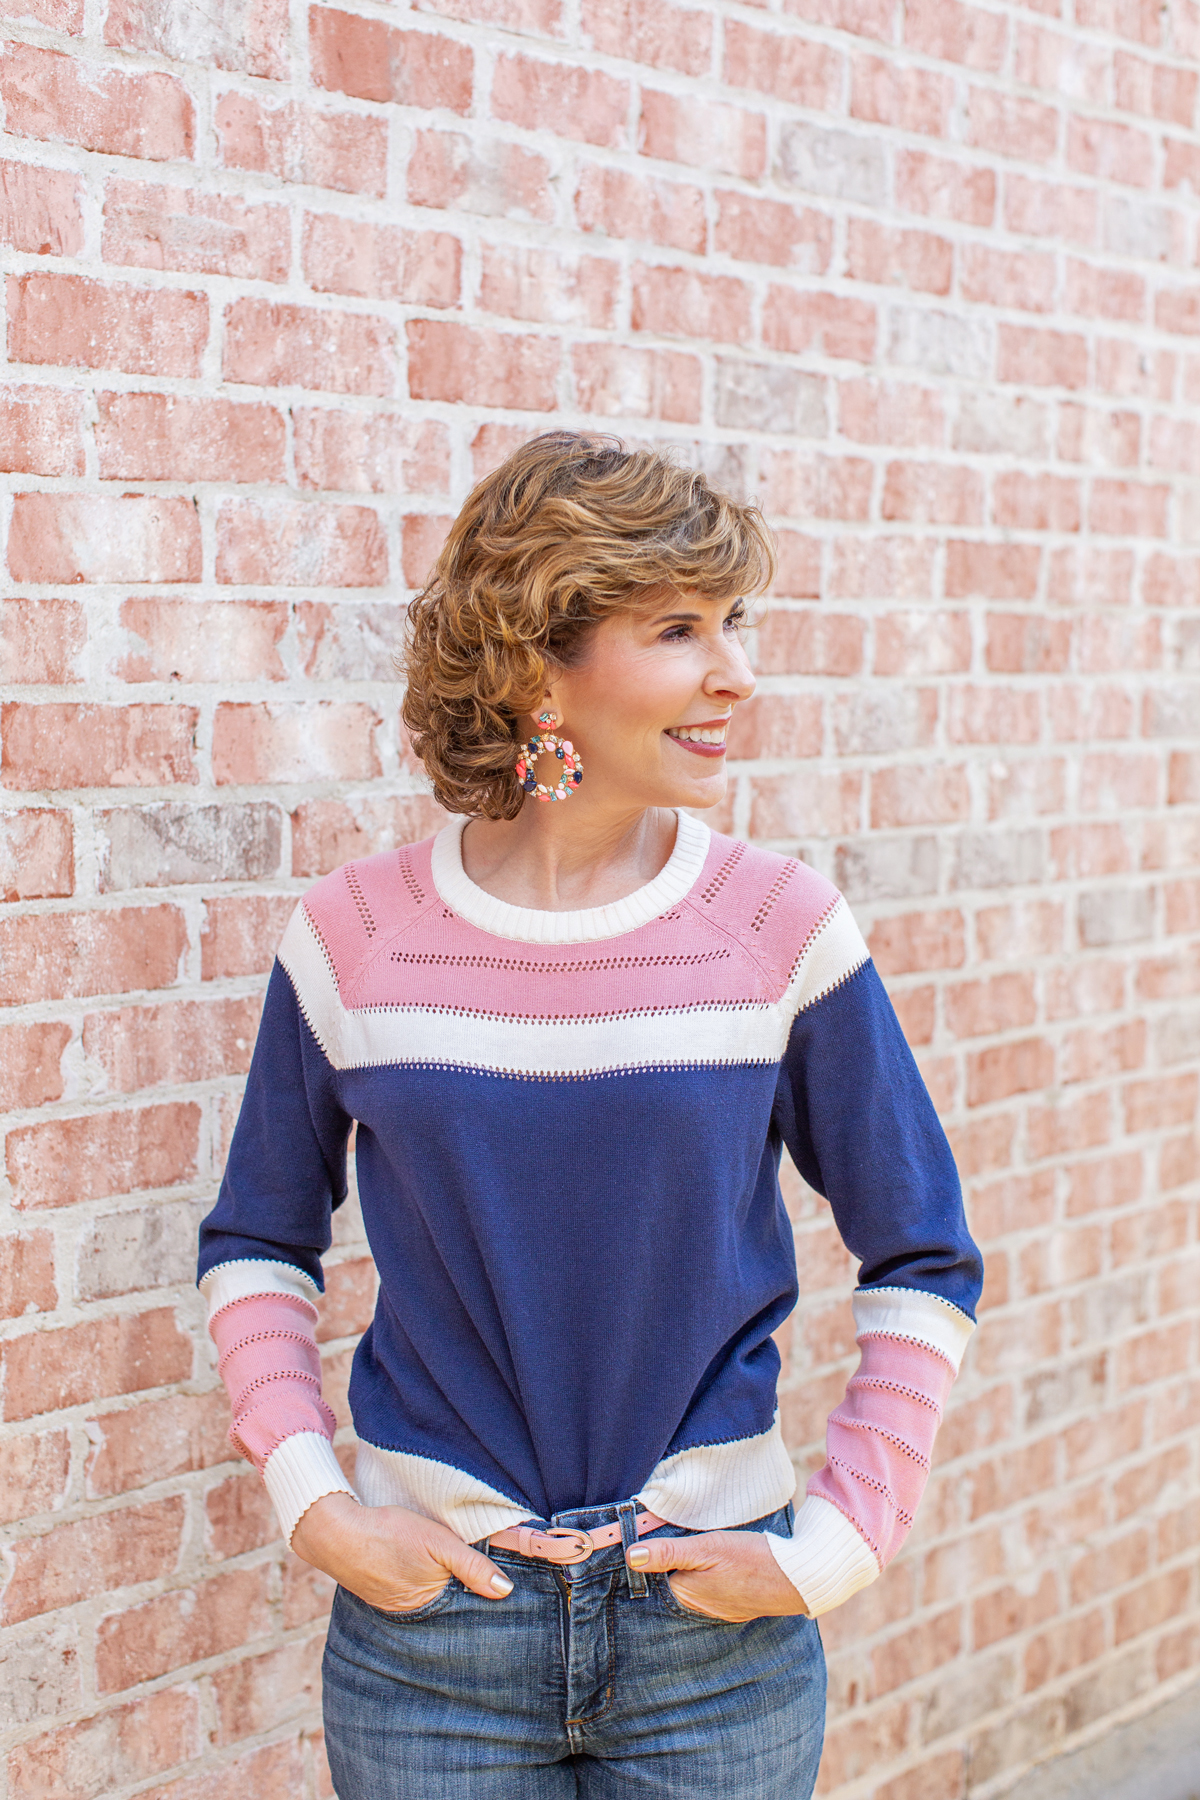 woman wearing pink and navy sweater and jeans with big earrings looking to the side